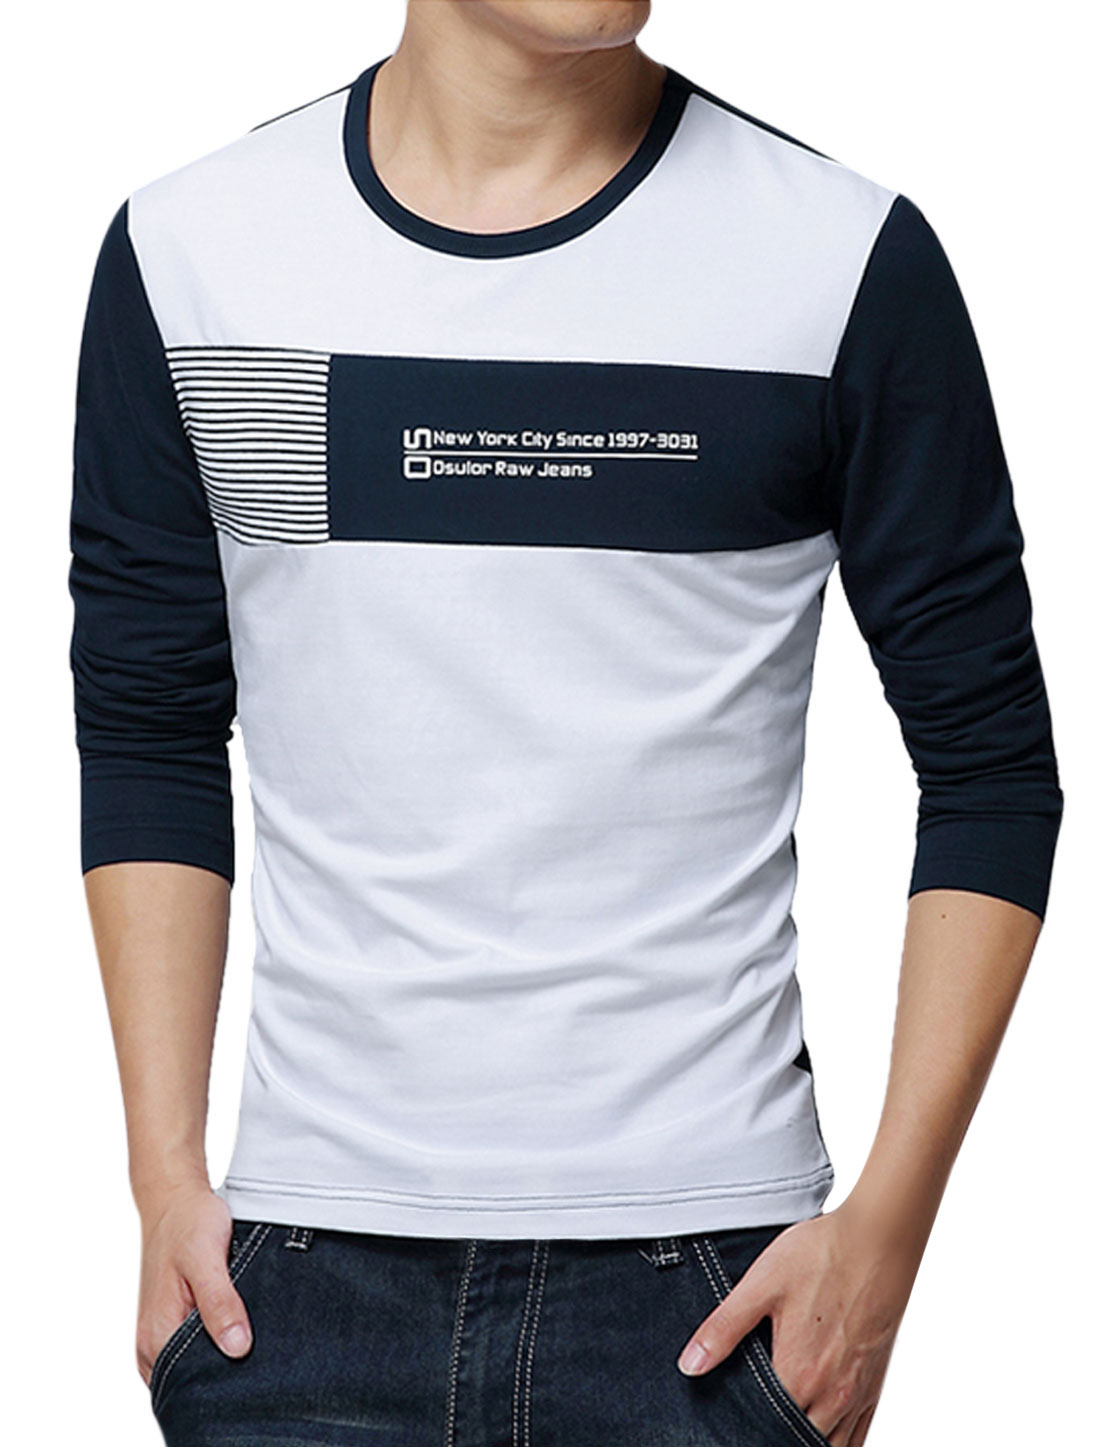 Men Long Sleeve Round Neck Contrast Color Casual T Shirt White Navy Blue M